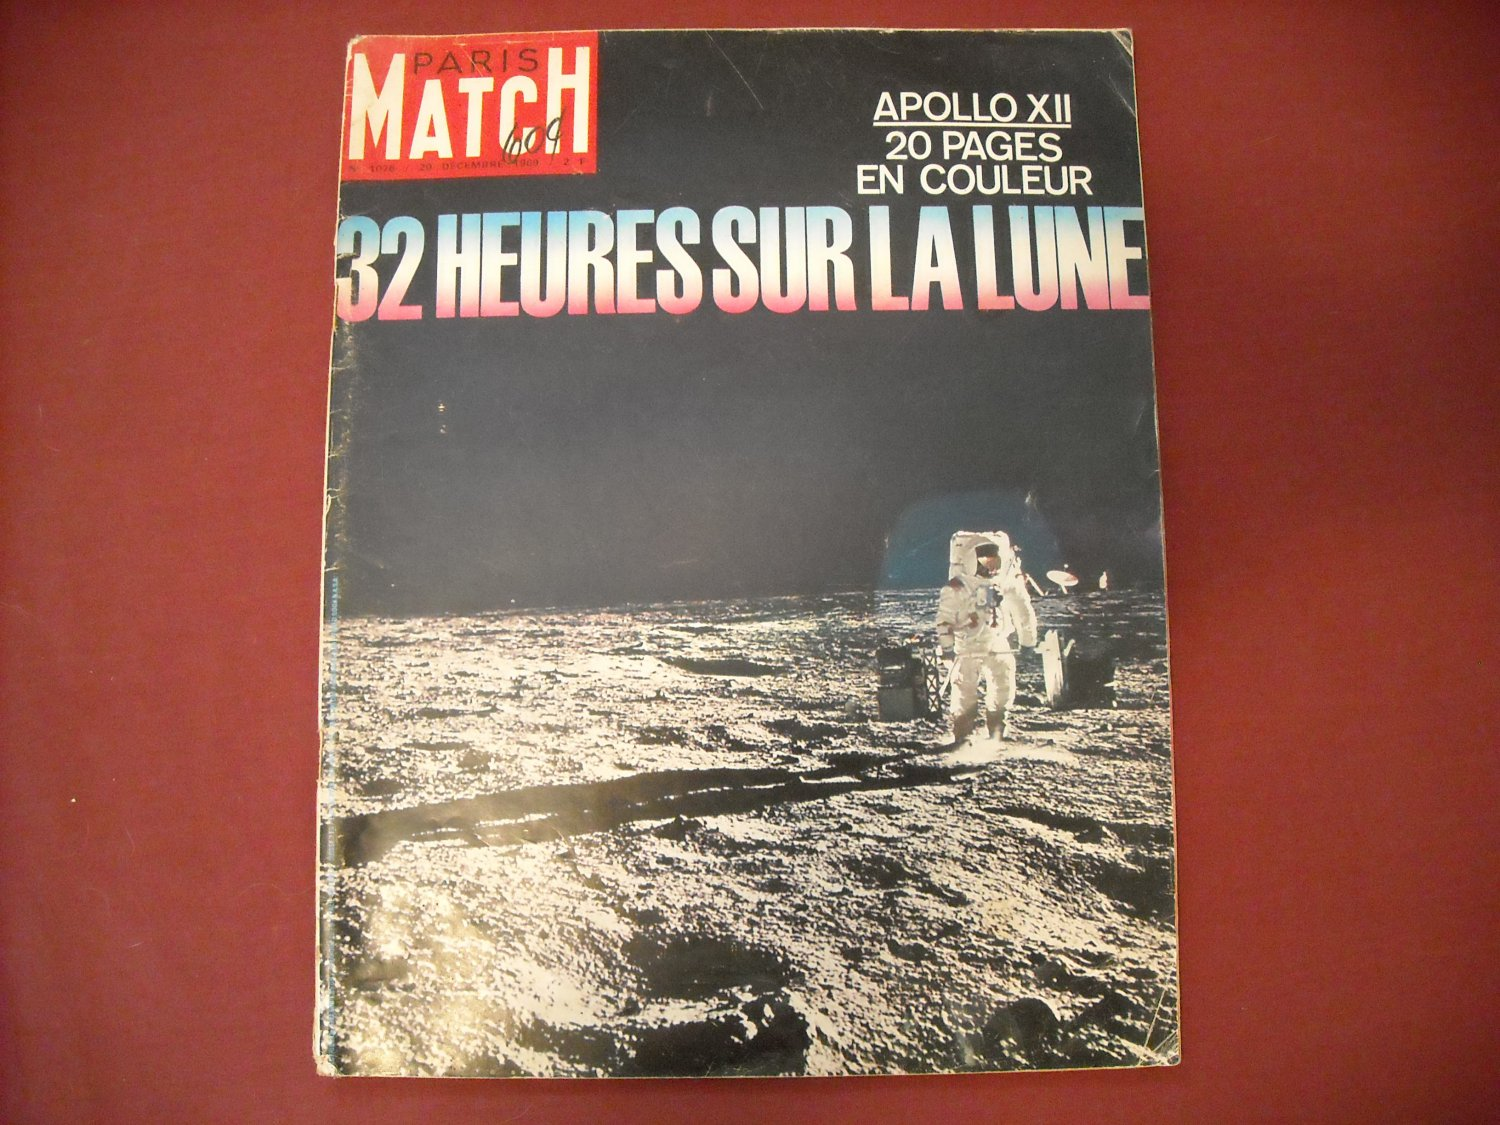 Paris Match # 1076 20 Decembre 1969 French Magazine- 32 Heures Sur La Lune Apollo XII (SG)